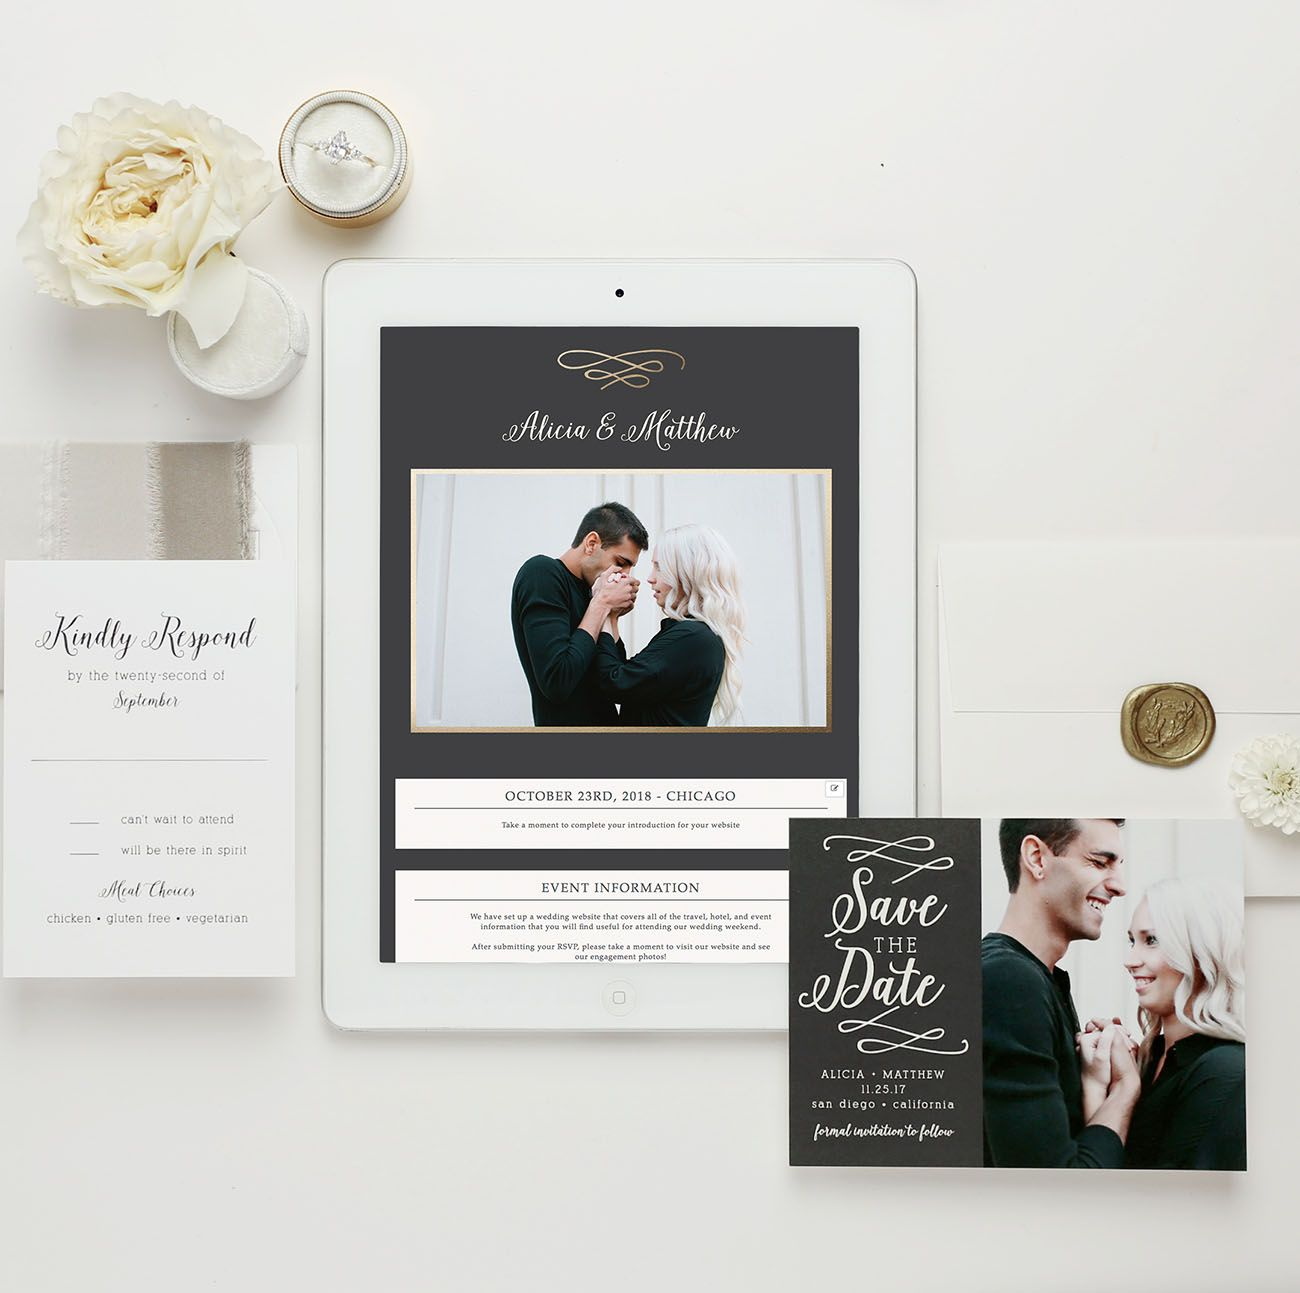 From Website to Invite, Basic Invite Has You Covered | Free wedding ...